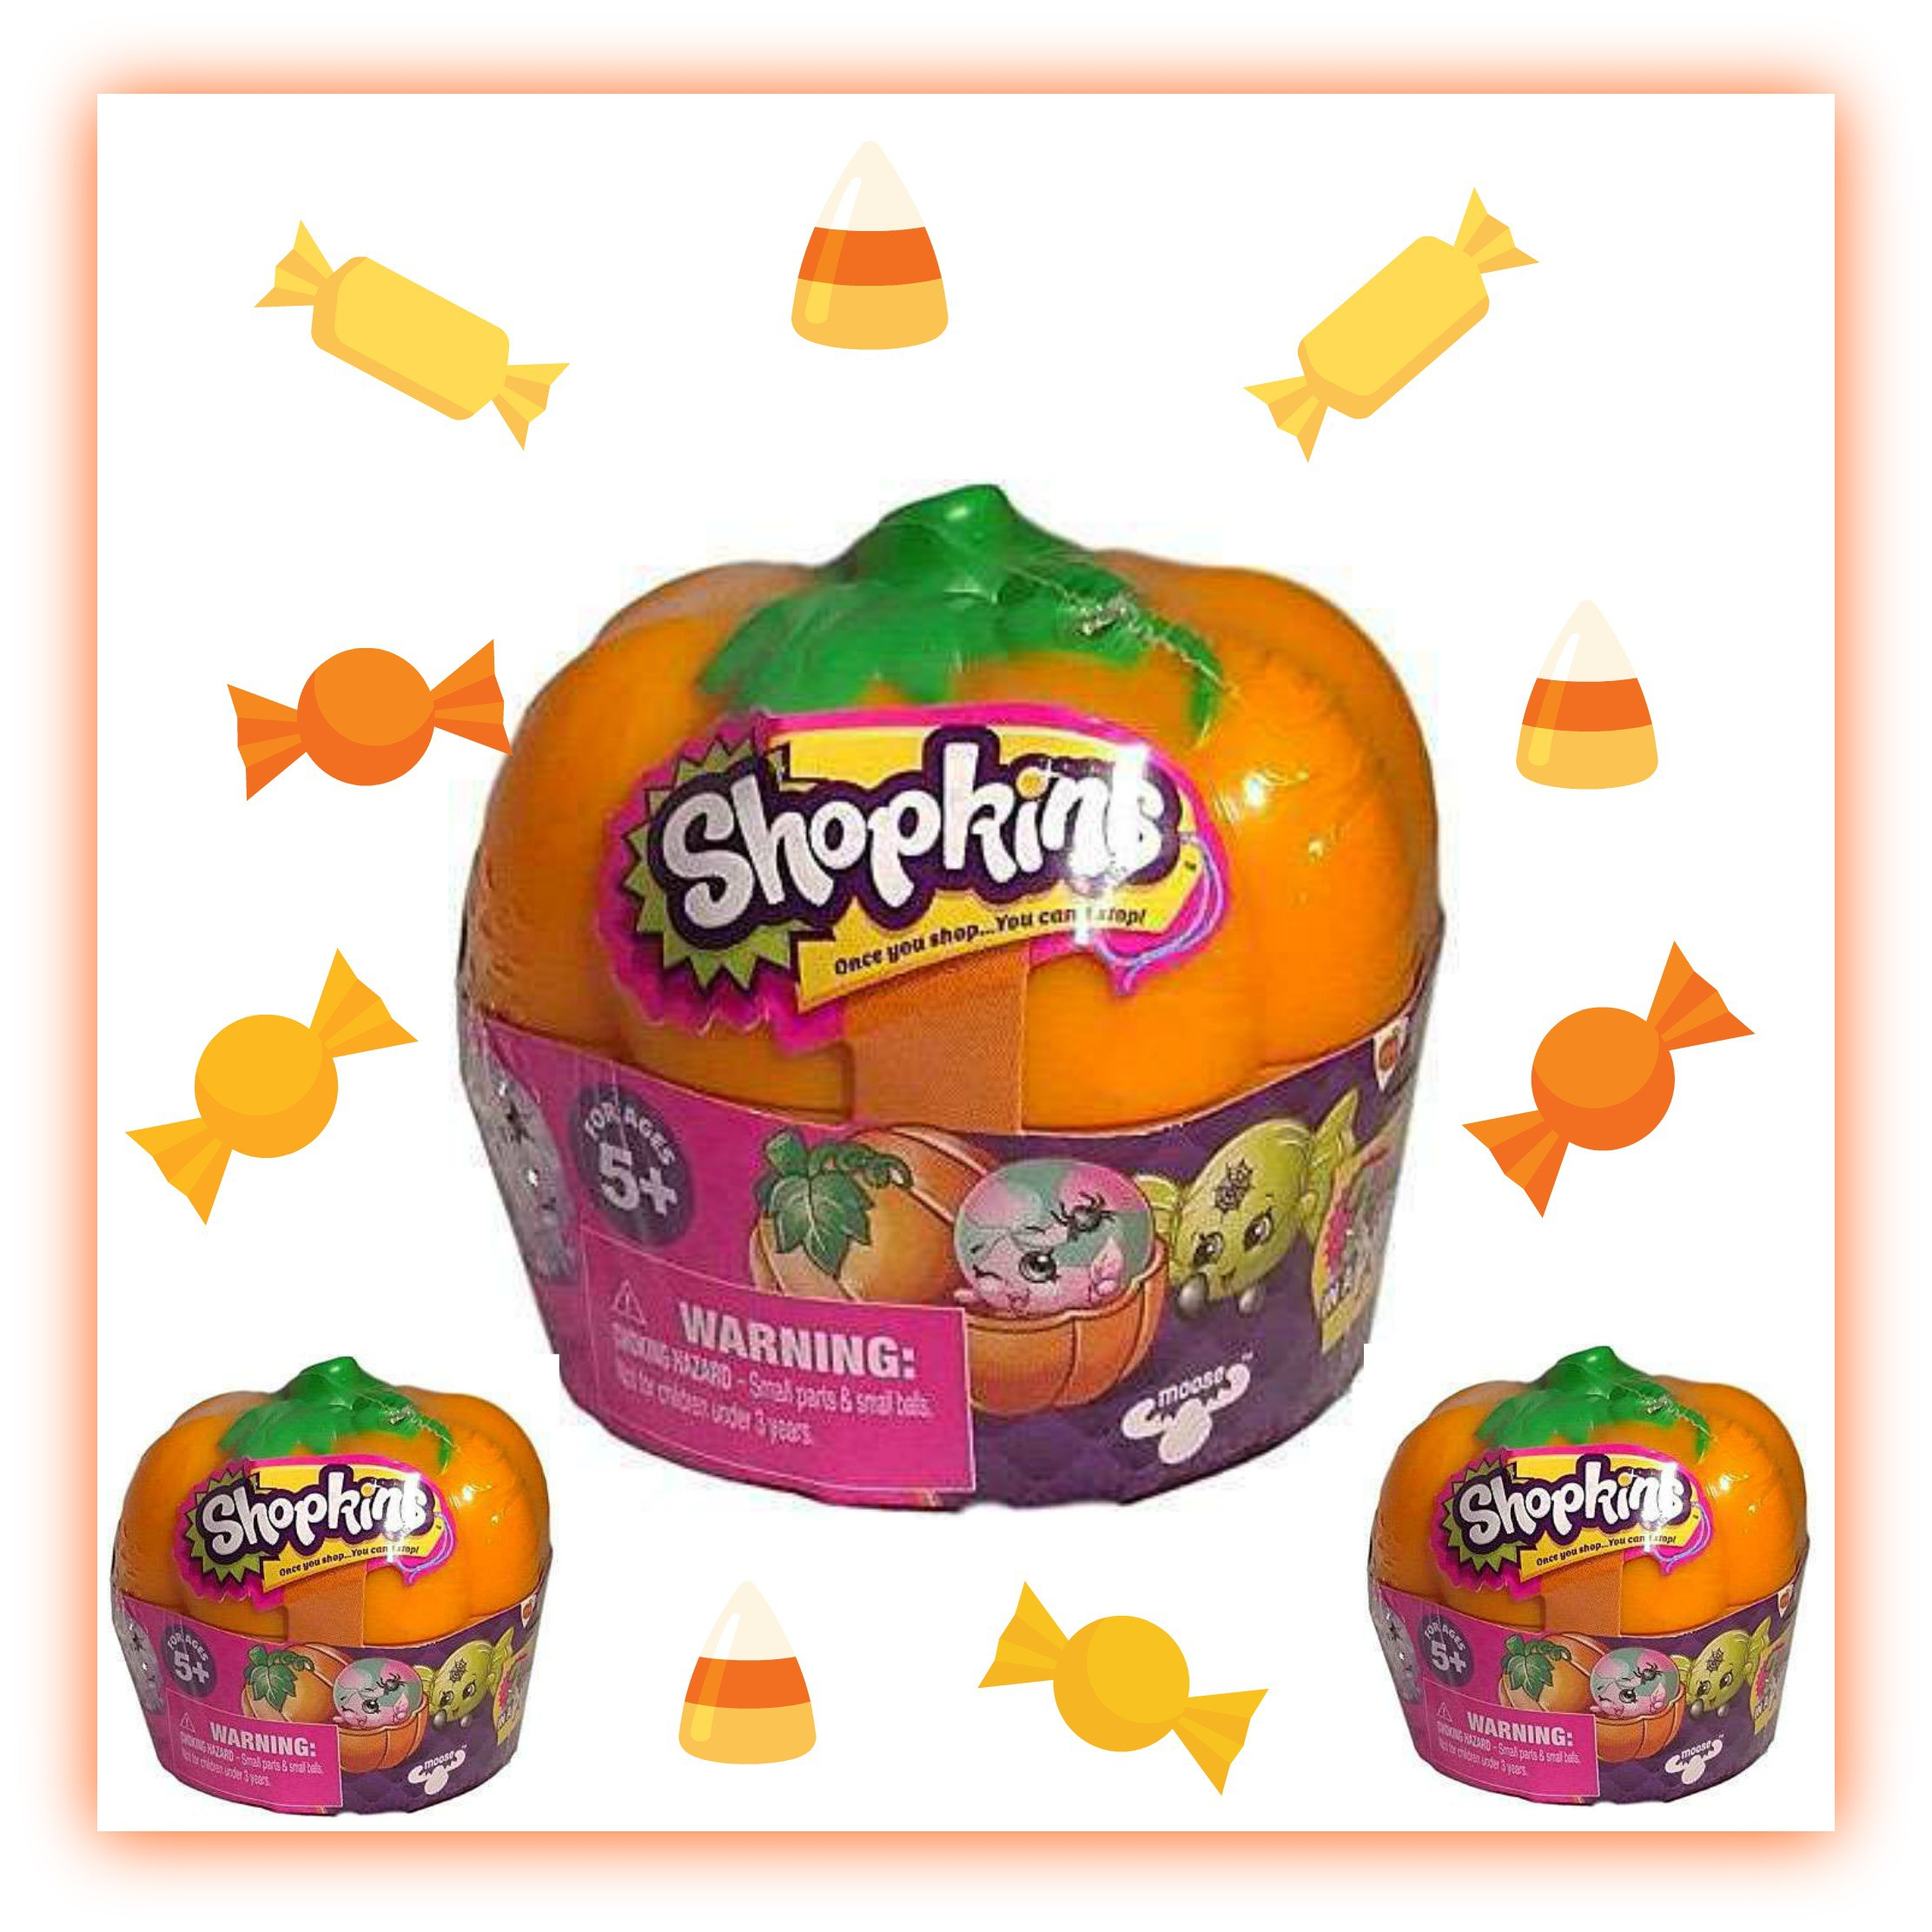 Shopkins pumpkin clipart image free download Shopkins Halloween Pumpkin Blind Basket Mini Figure 2-Packs | Kidd ... image free download